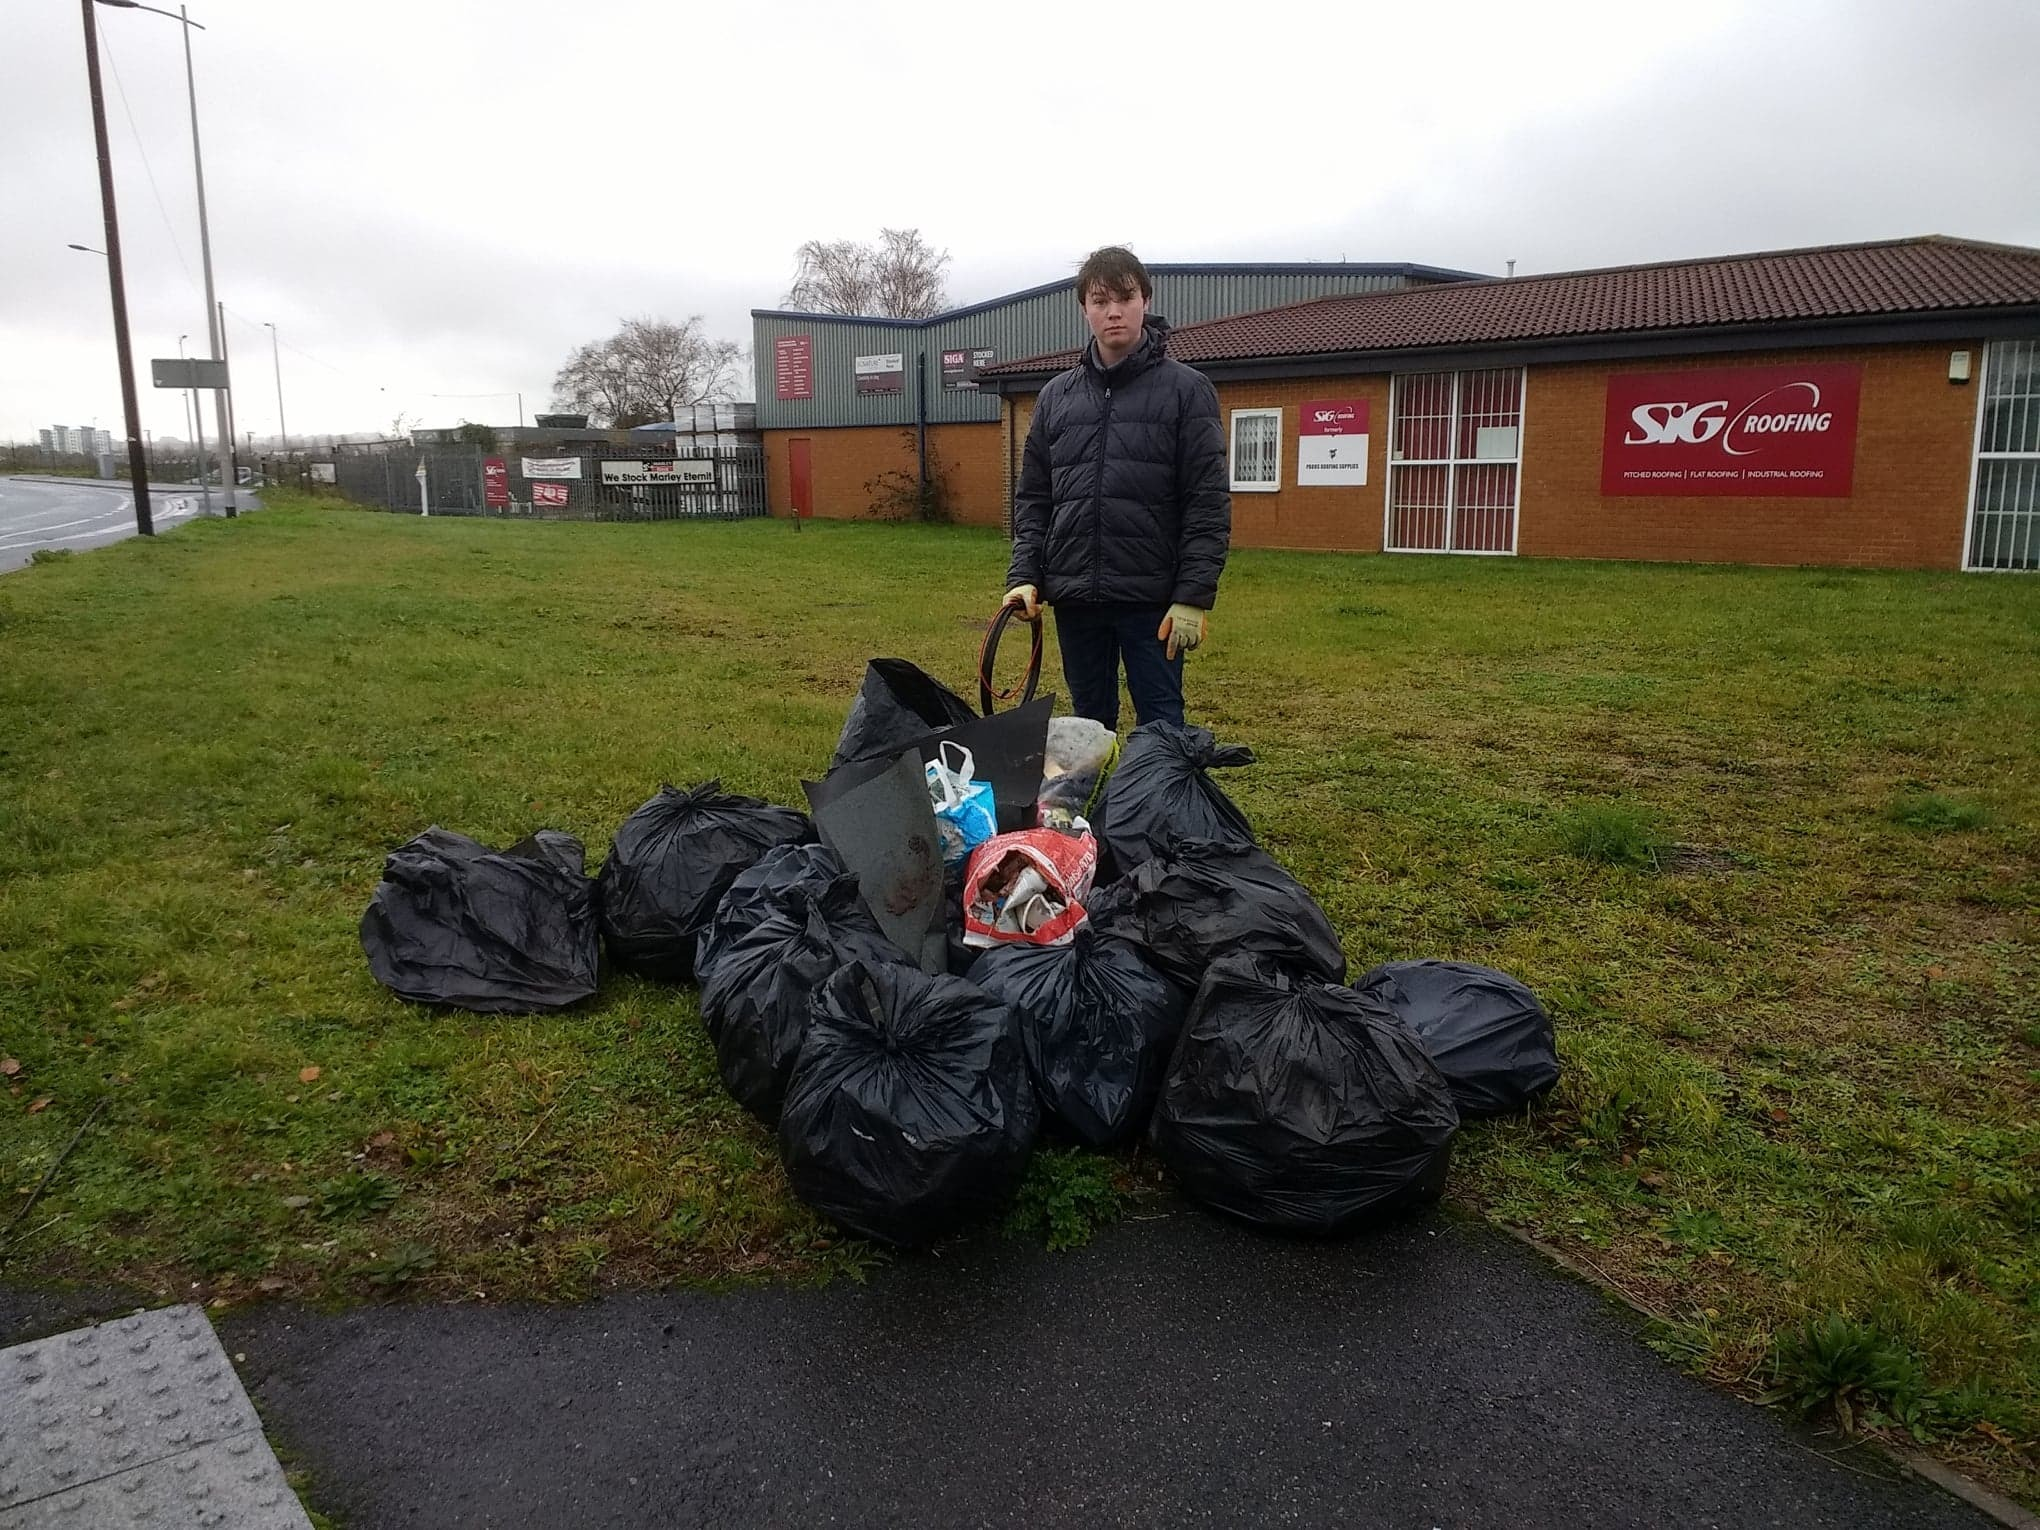 Residents in Hamworthy carried out a litter pick in Rigler Road and collected 17 bags of rubbish